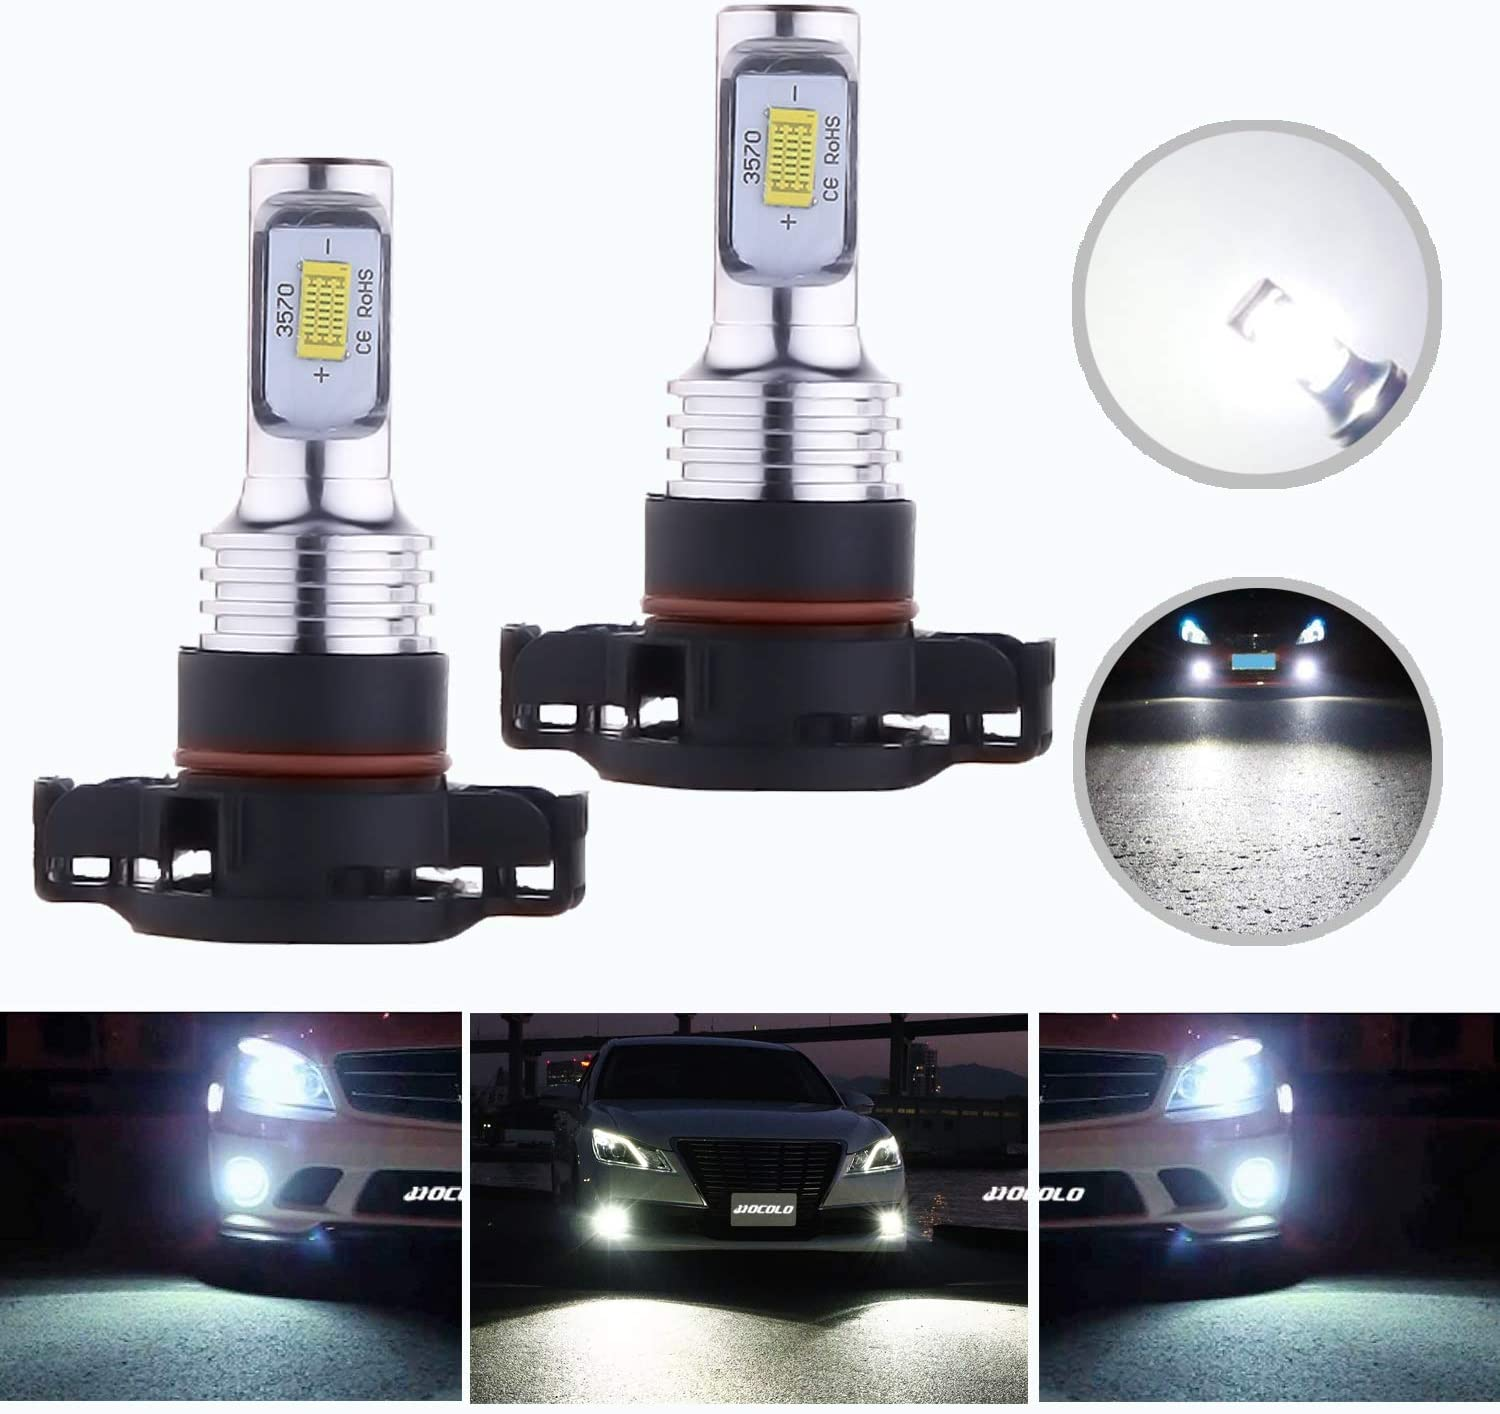 HOCOLO 2x 2504 PSX24W 12276 LED Bulbs 6500K DRL Fog Driving Light Brighting Daytime Running Lamp Replace Halogen 3570 CSP Chips Car Vehicle Parts Plug-N-Play High Power(2504/PSX24W_Fog,White/6000K)